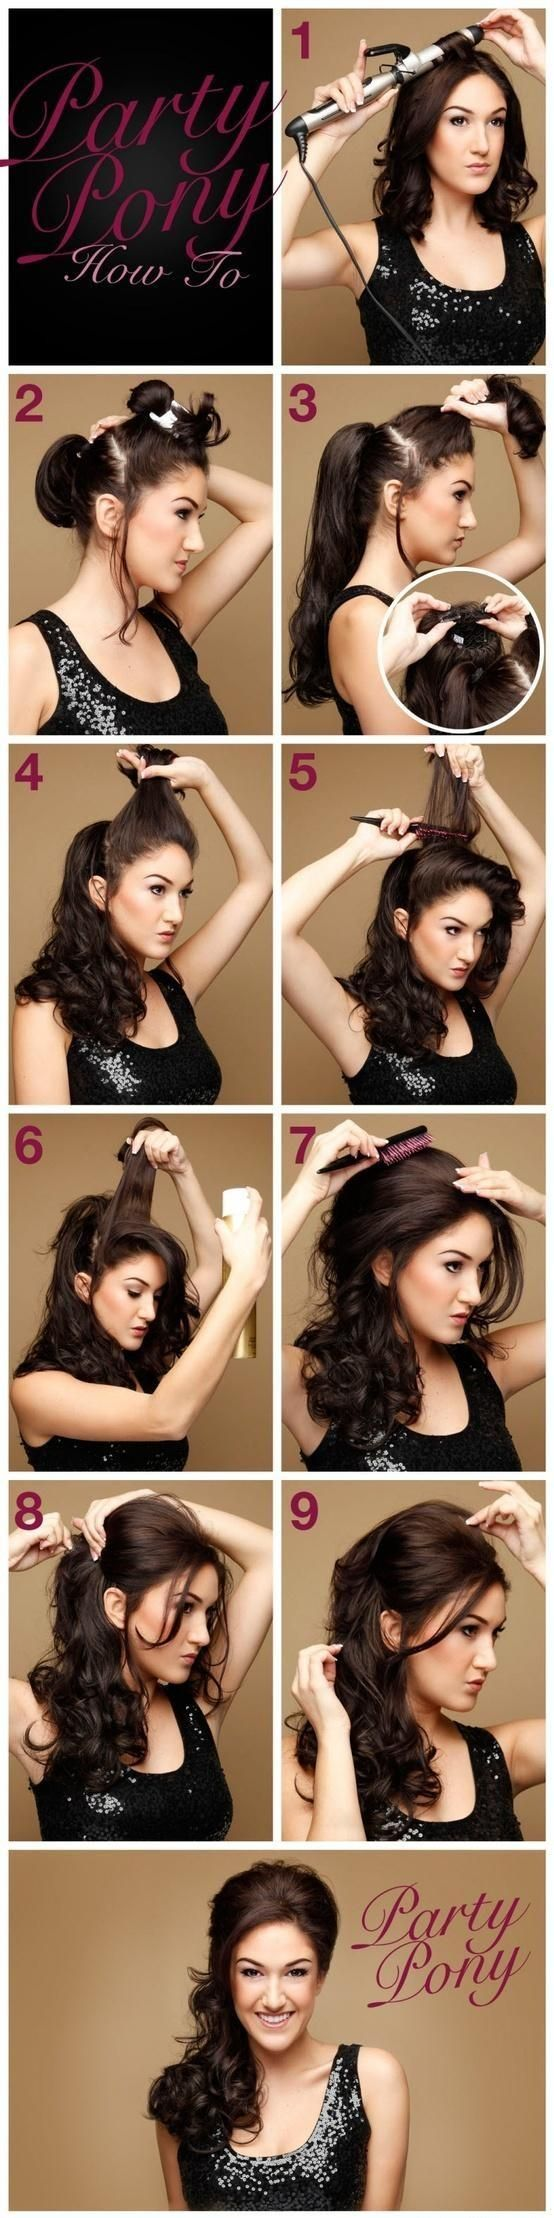 DIY Party Pony Hairstyle DIY Projects